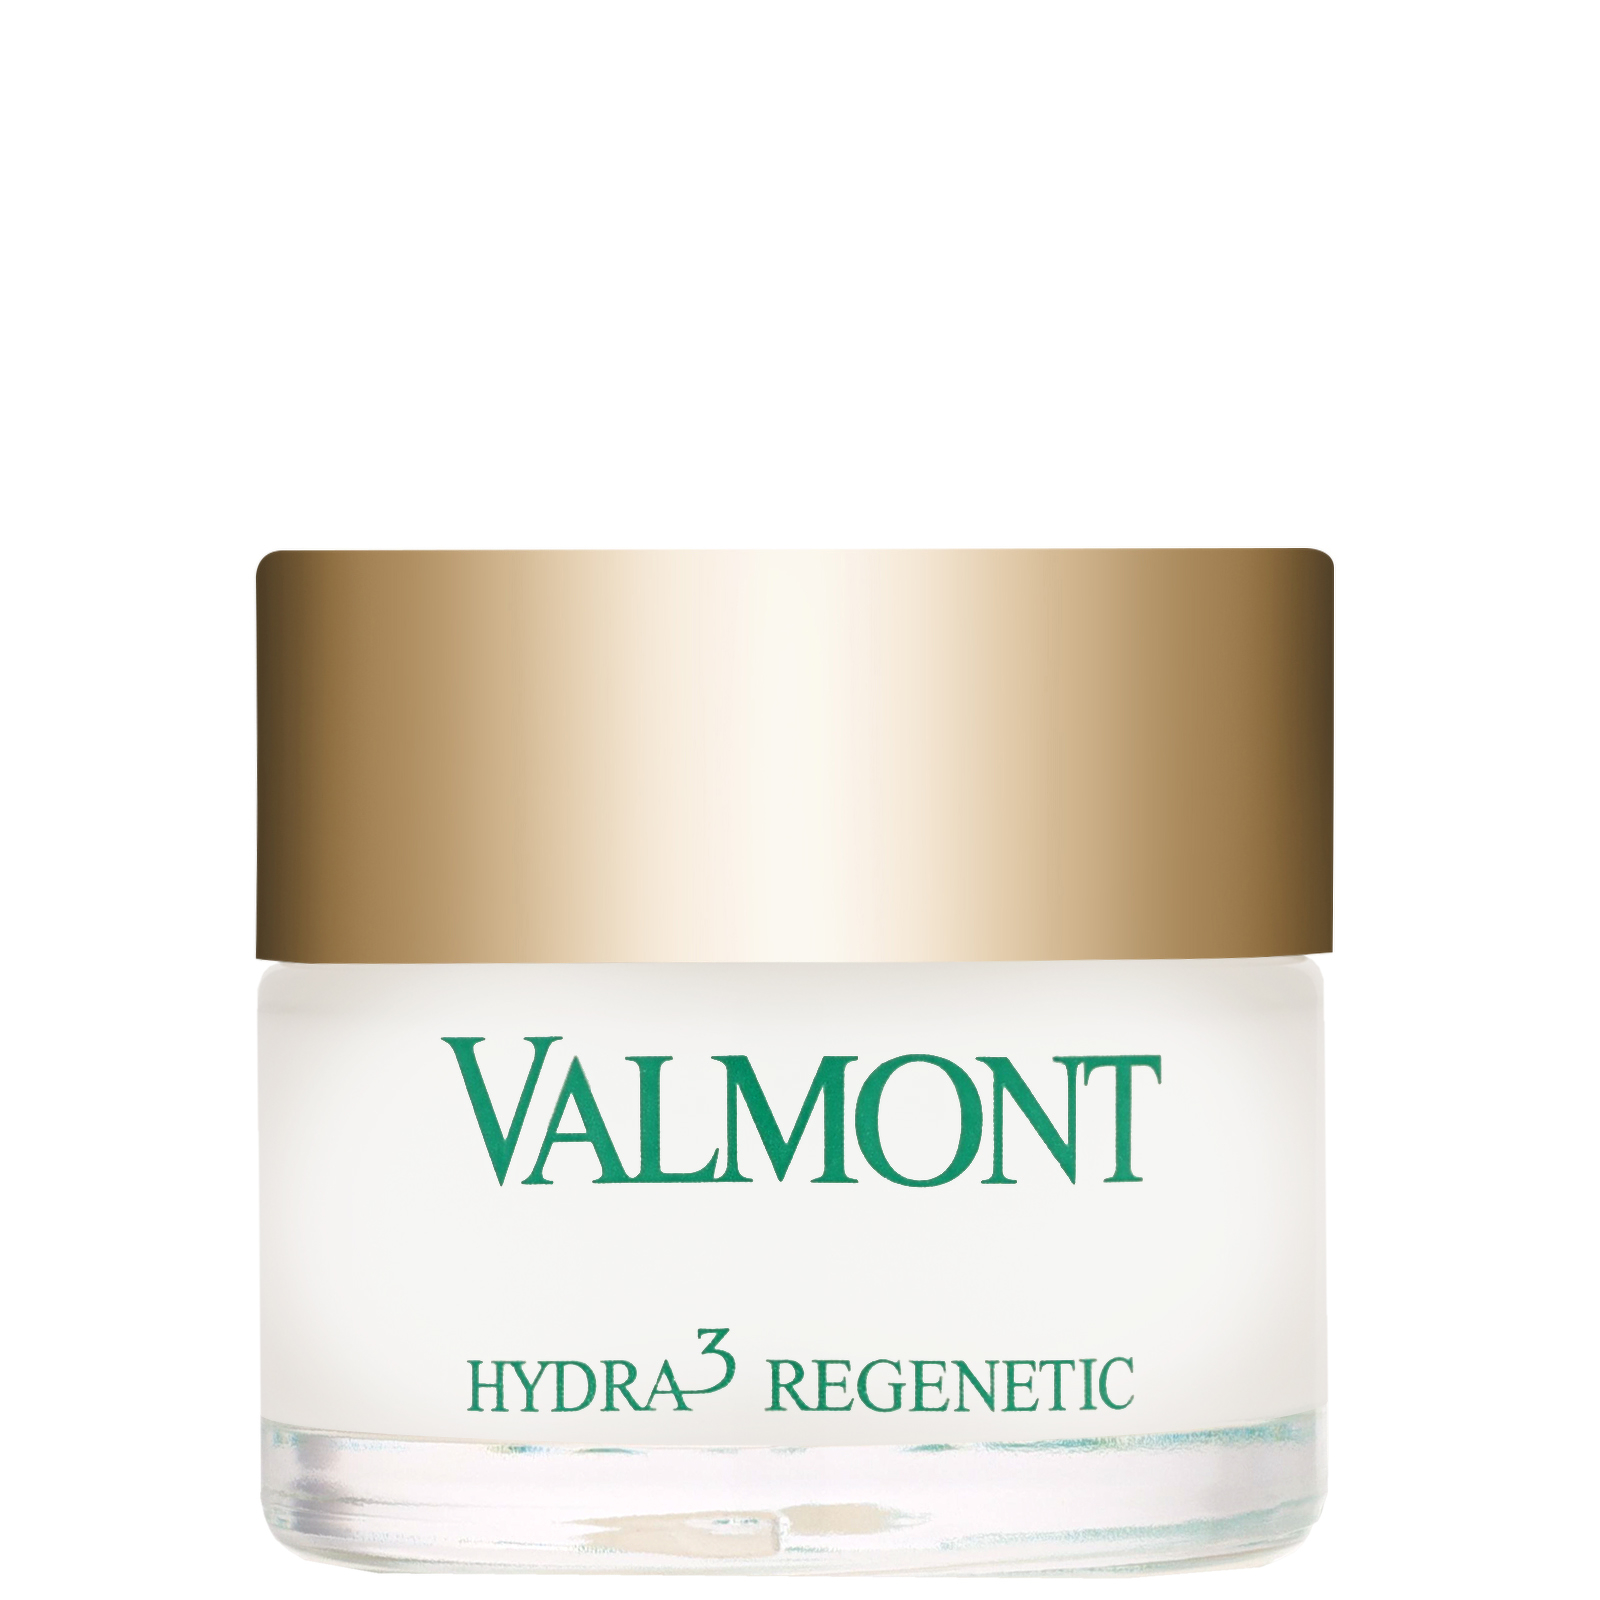 Valmont Hydration Hydra 3 Regenetic Cream 50ml